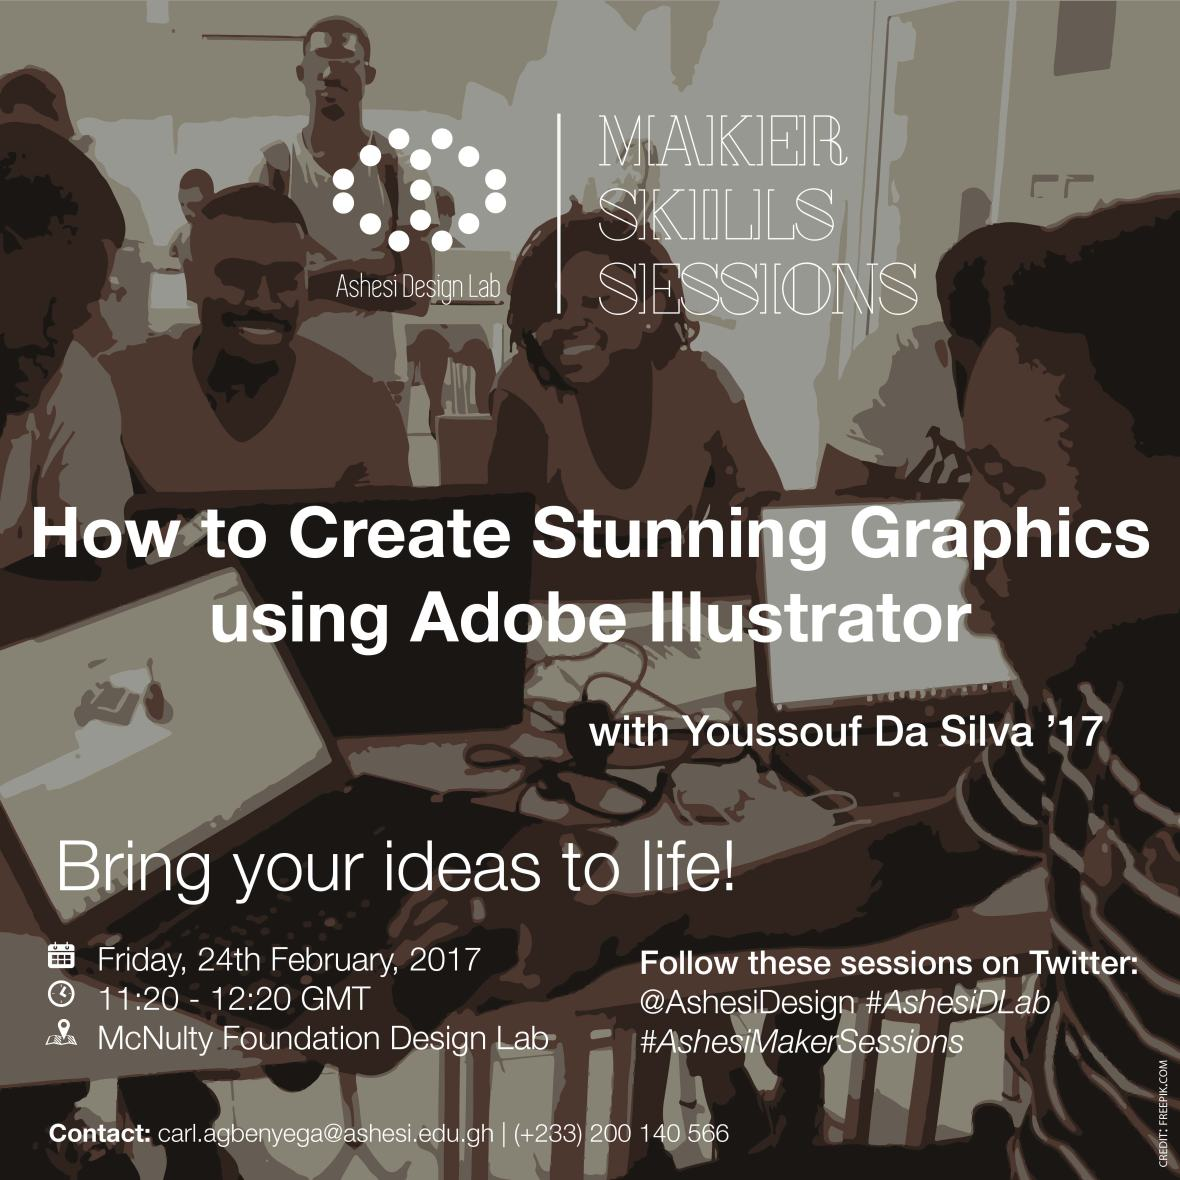 ashesi-dlab-maker-skills-sessions-vector-graphics-with-illustrator-01-01